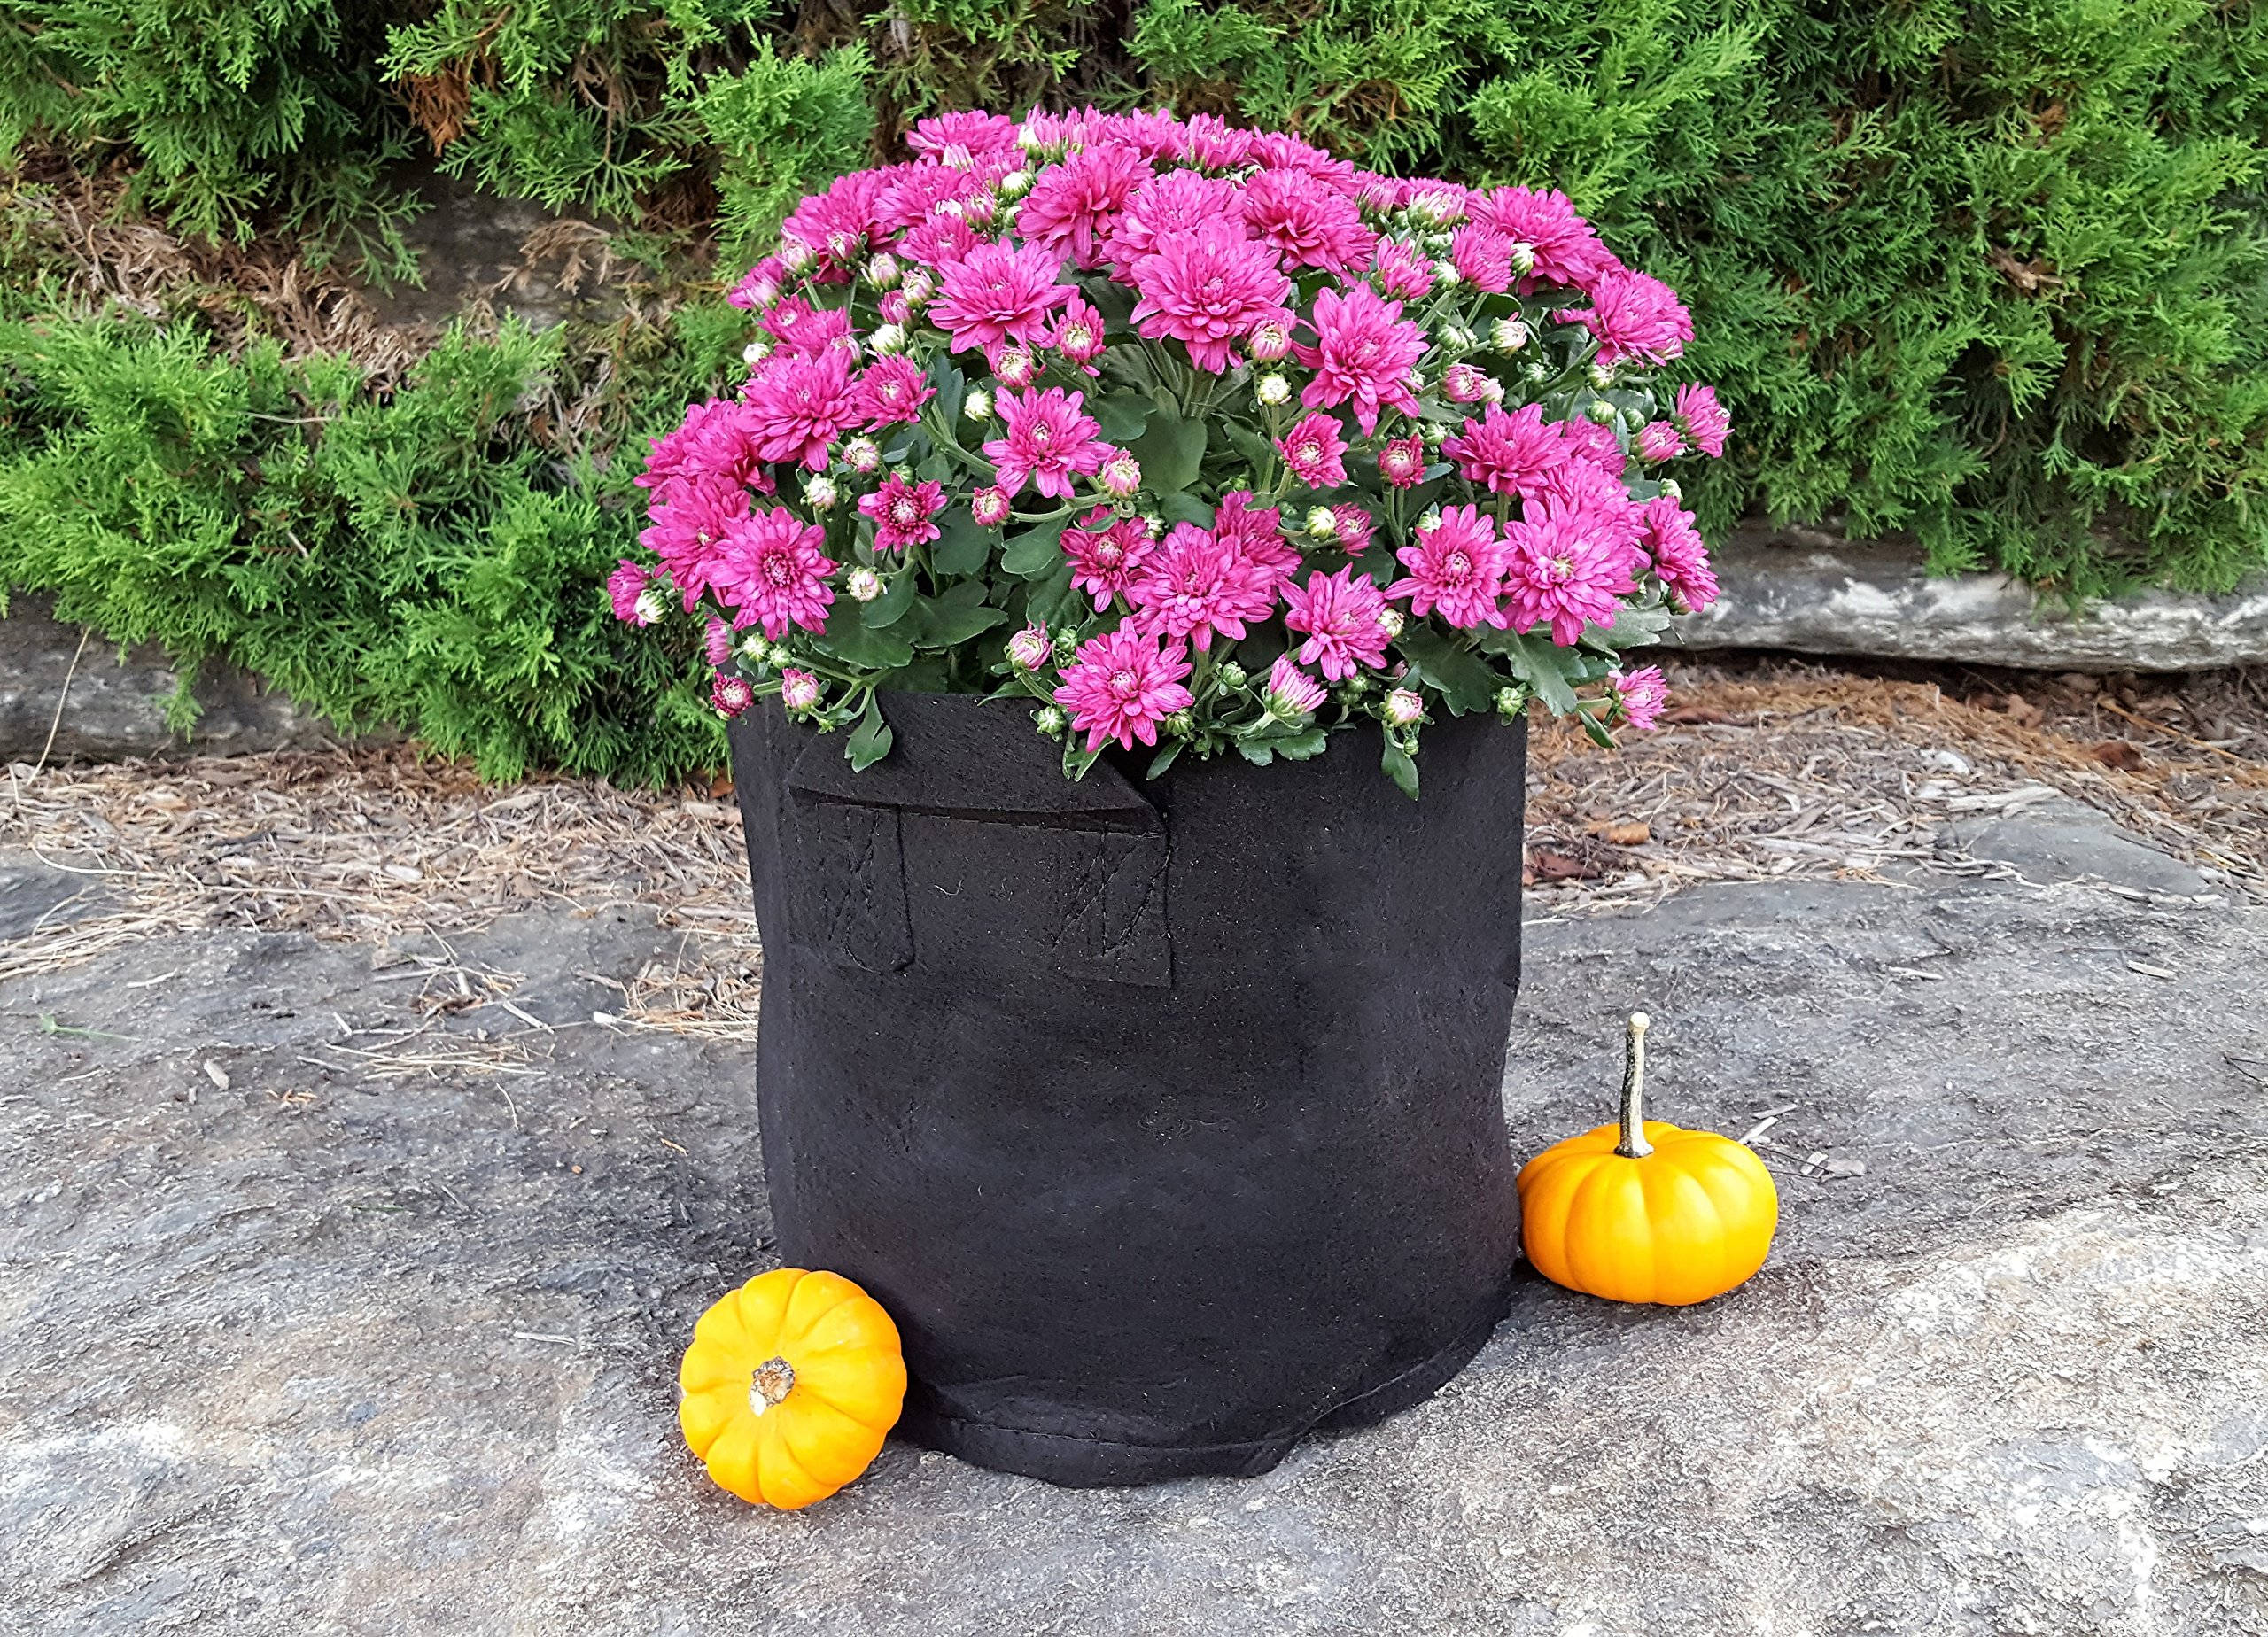 Grow Bags 5 Gallon Fabric Plant Pots with Handles, 10 Pack, by Bootstrap Farmer by Bootstrap Farmer